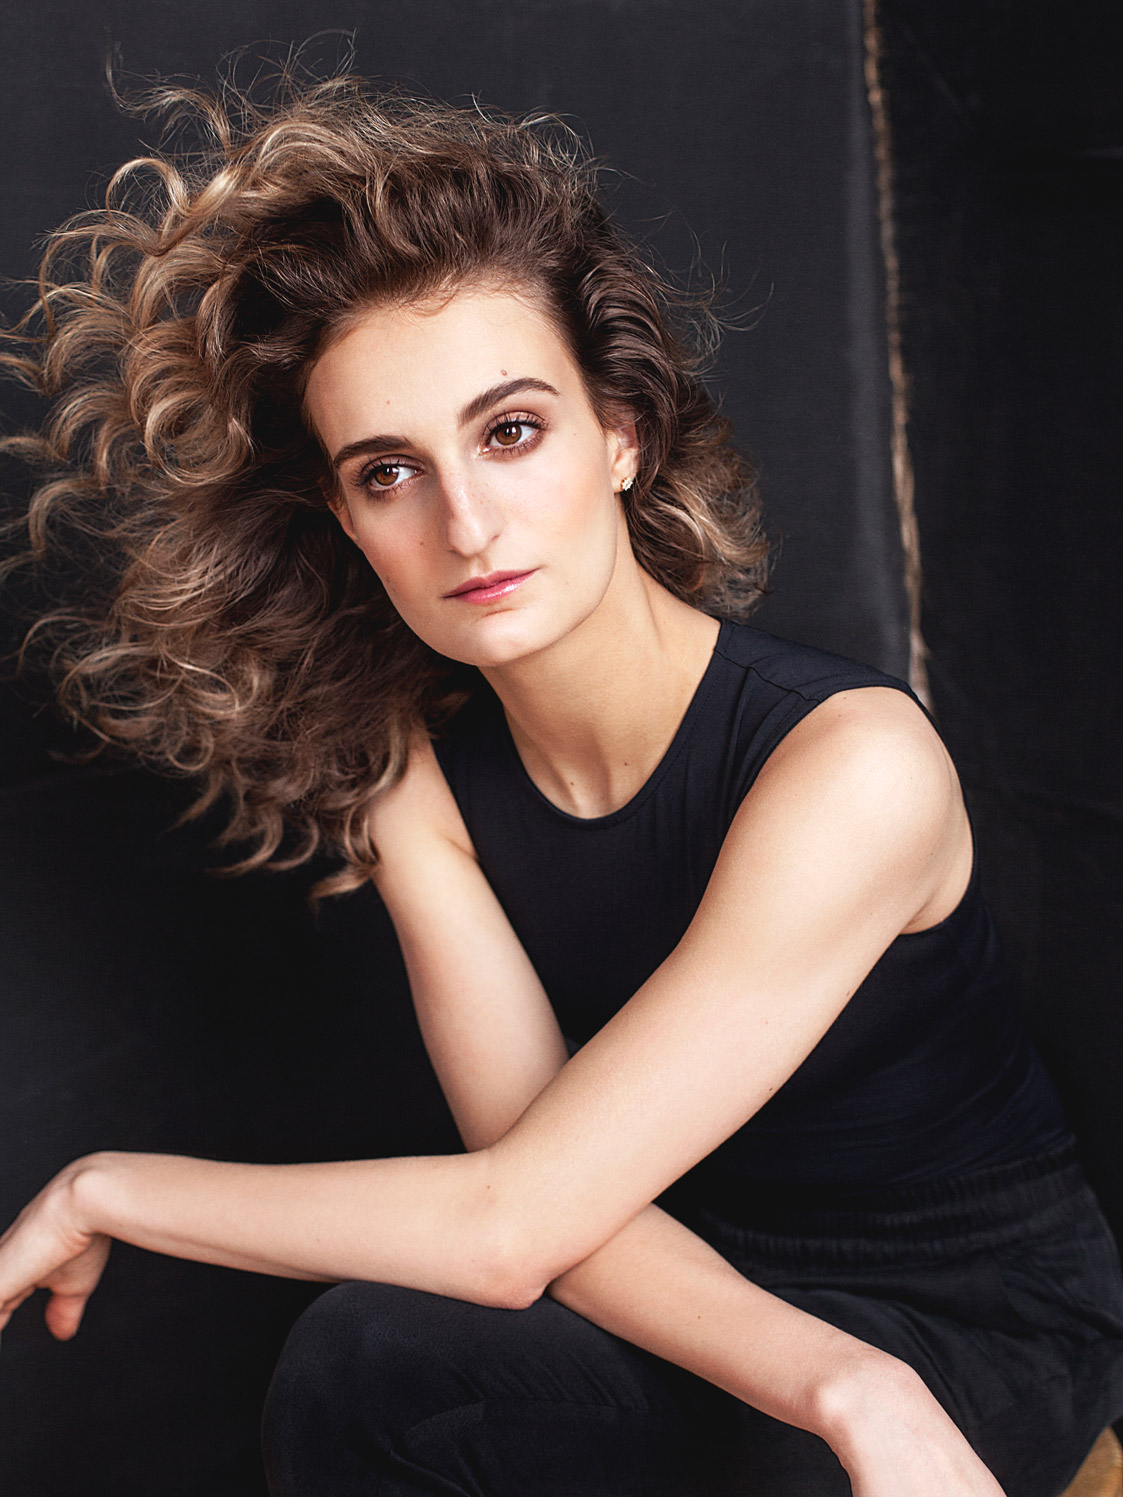 Natural beauty portrait photo of Olympic athlete Gabriella Papadakis in studio.